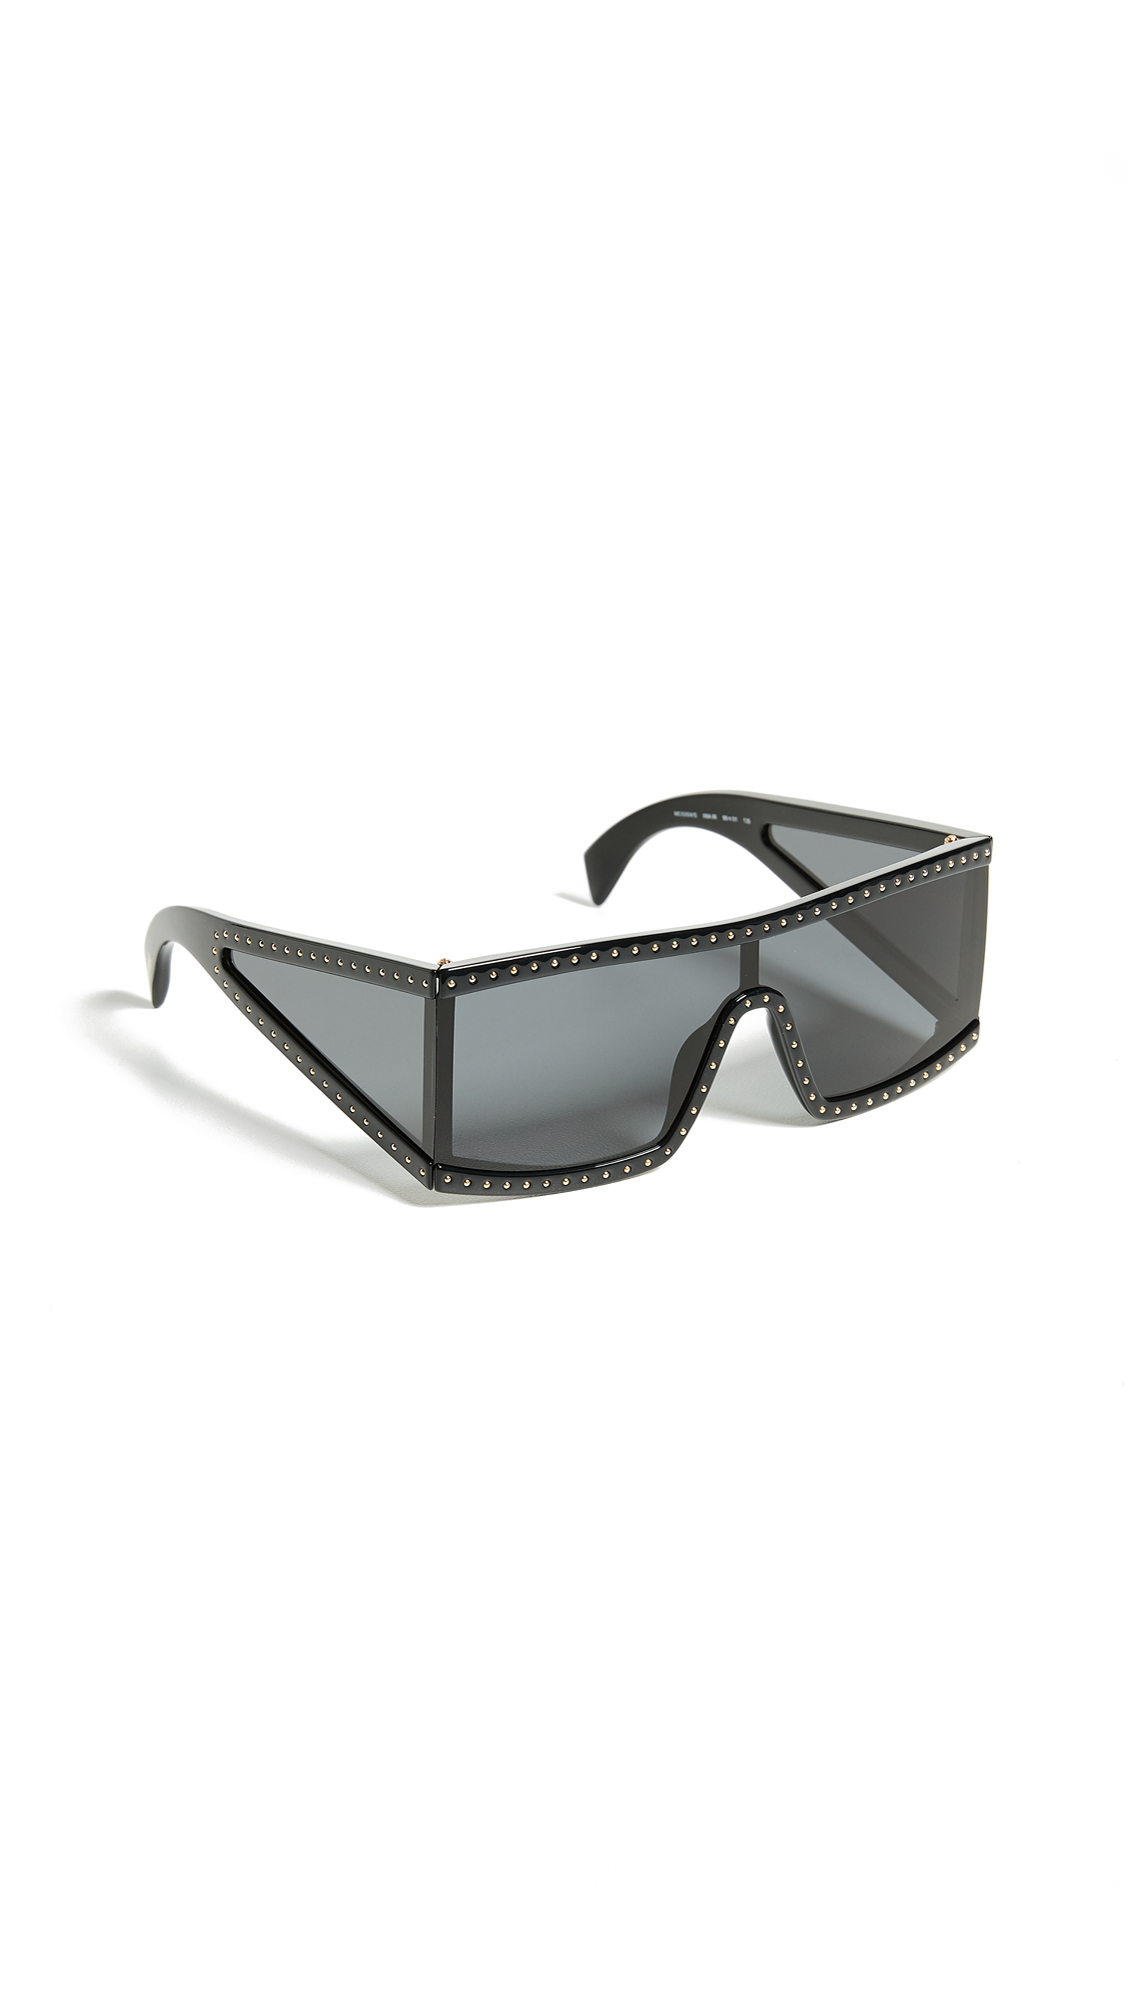 ALL LENS SUNGLASSES